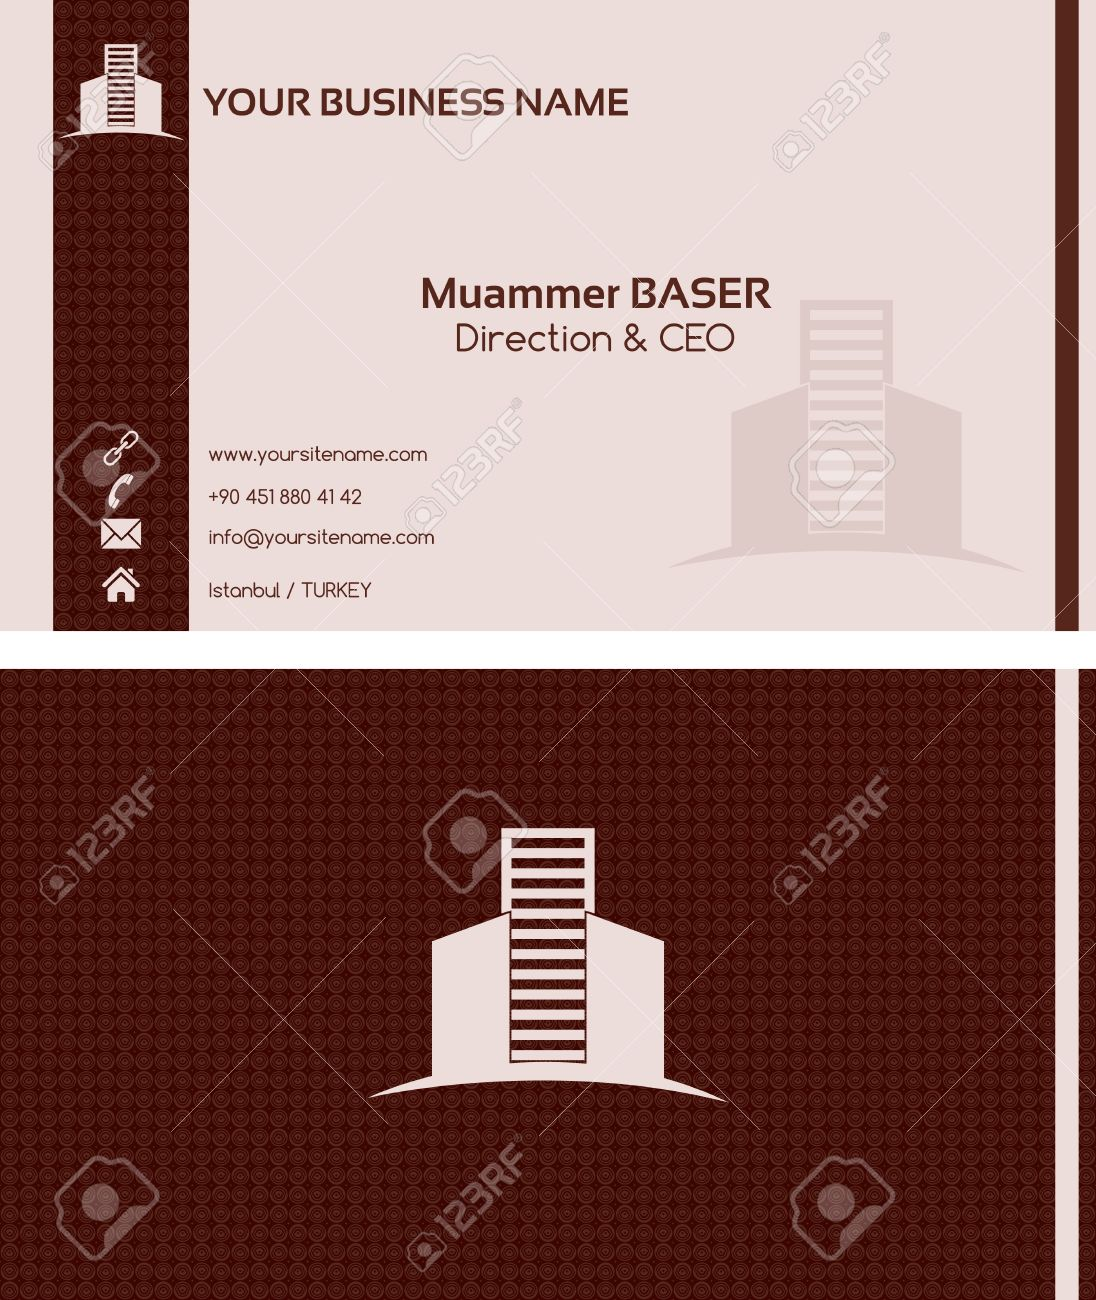 Real estate business card front and back Stock Vector - 18775723